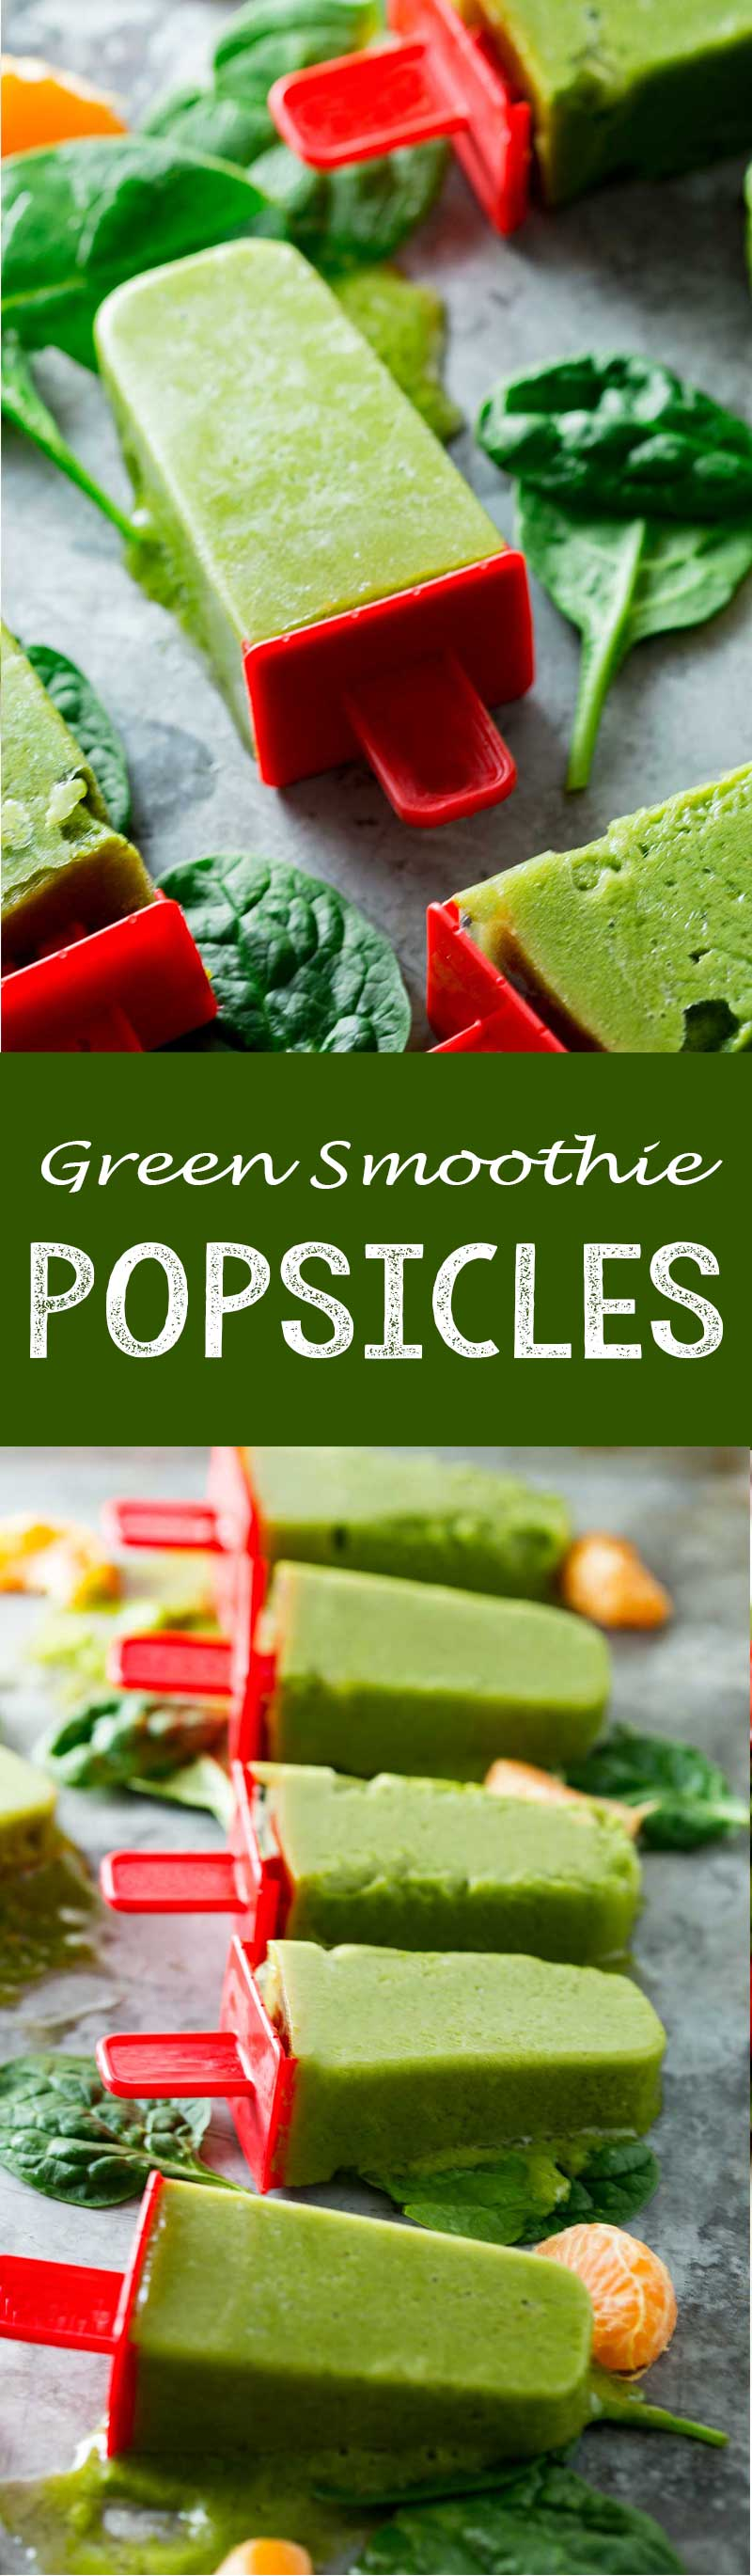 These are the yummiest, healthiest popsicles you will ever eat